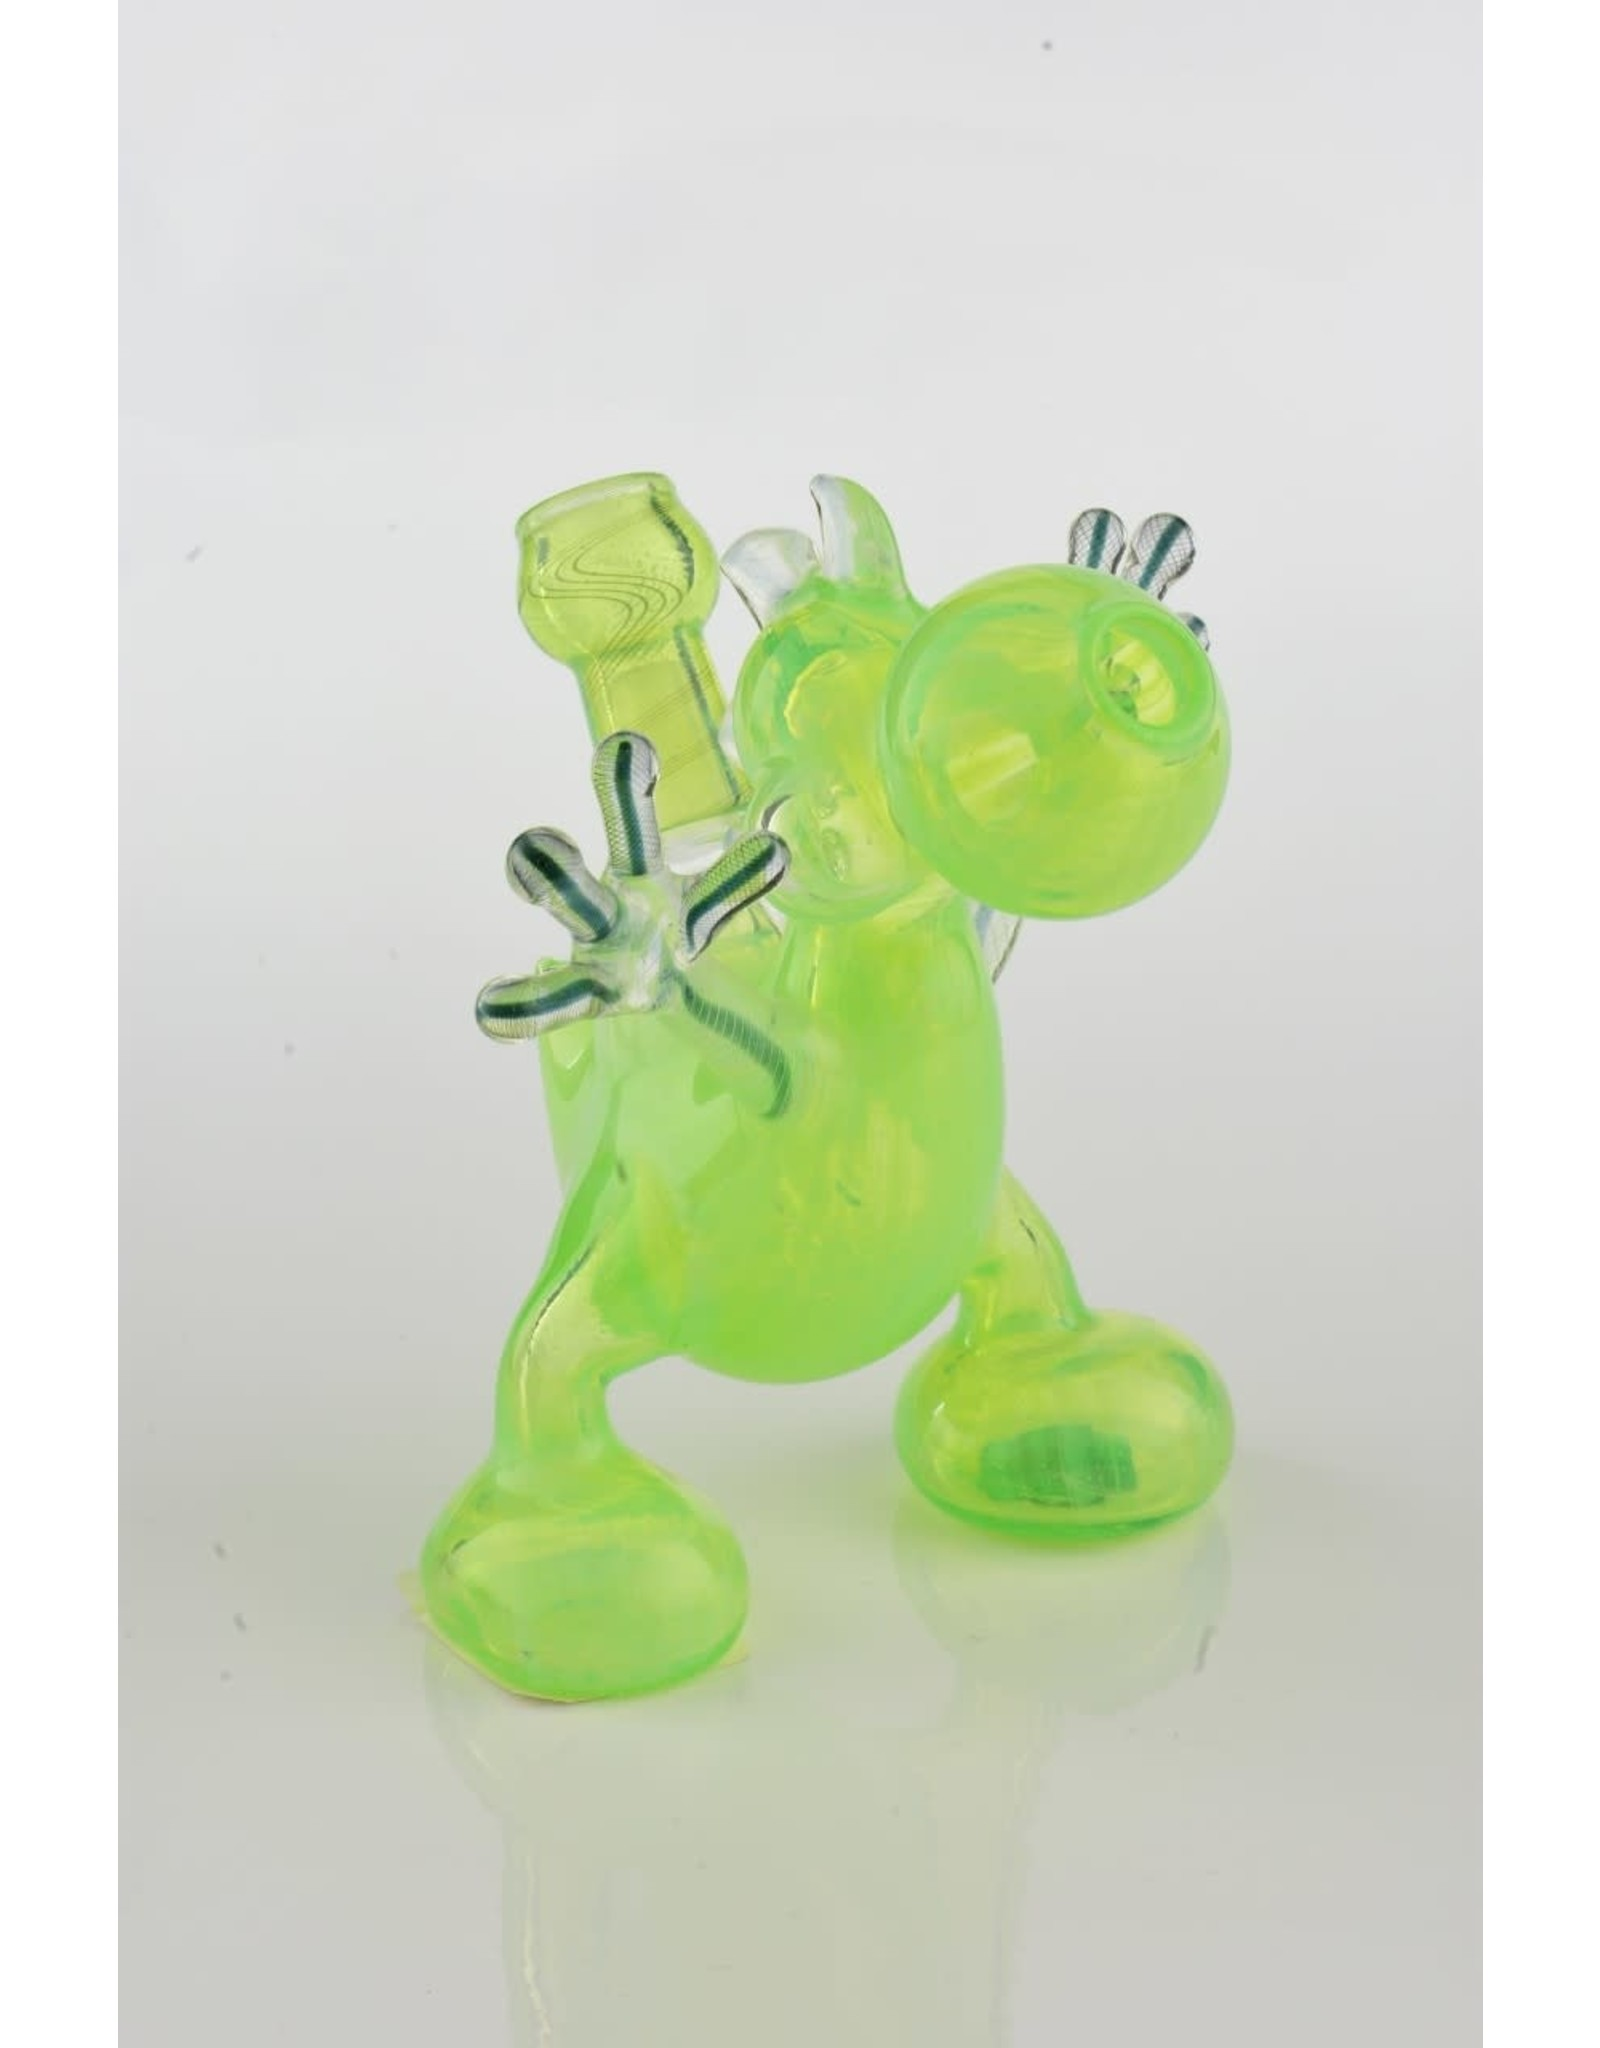 Lee Machine Lee machine slime green Yoshi rig